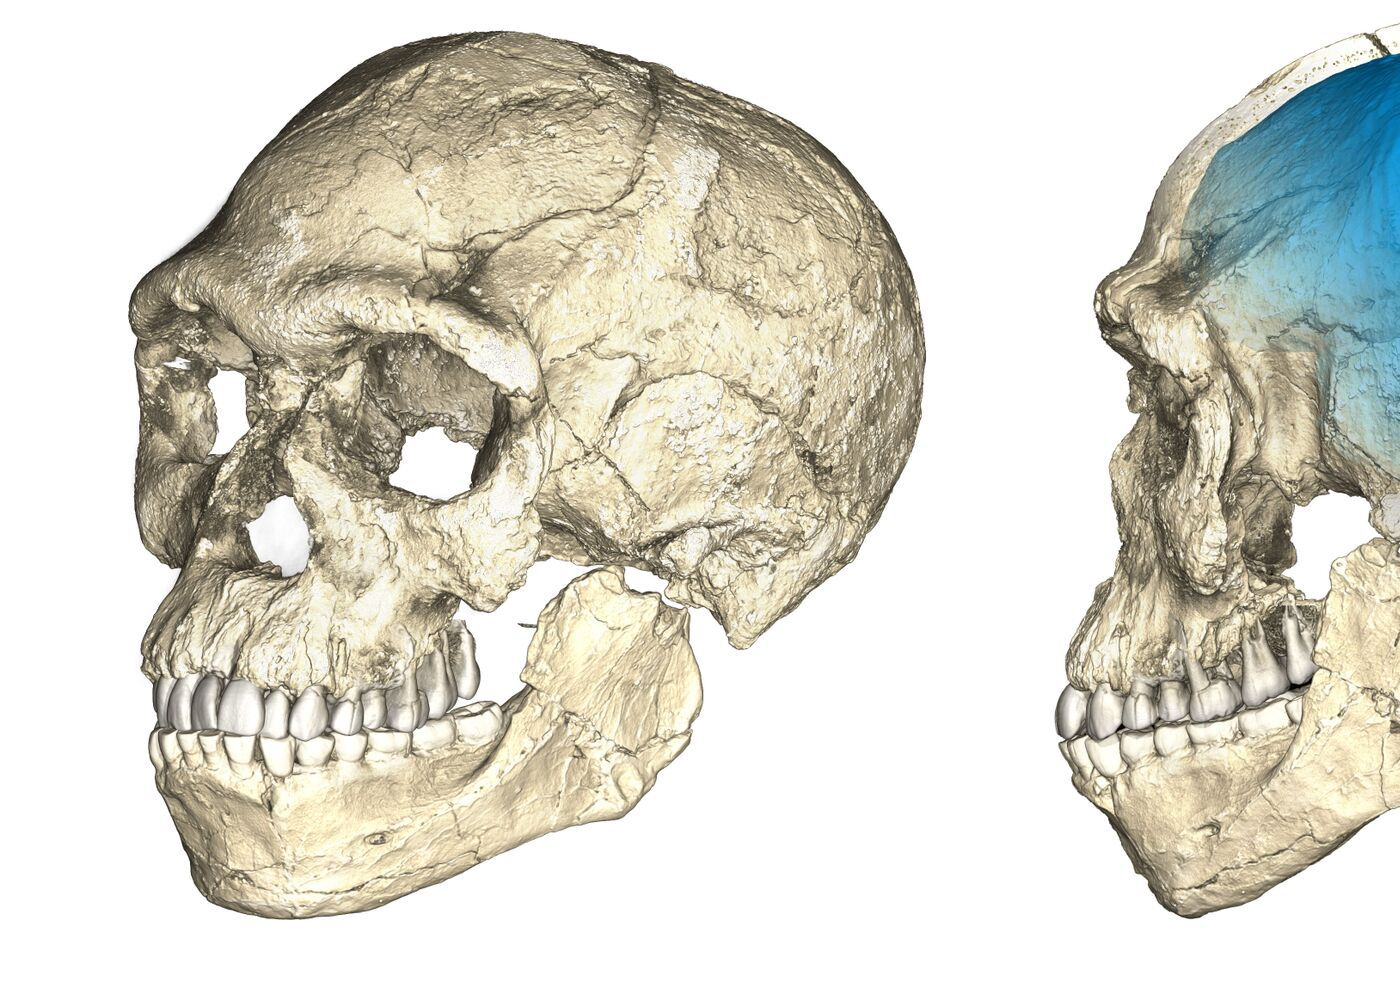 The story of human evolution in Africa is undergoing a major